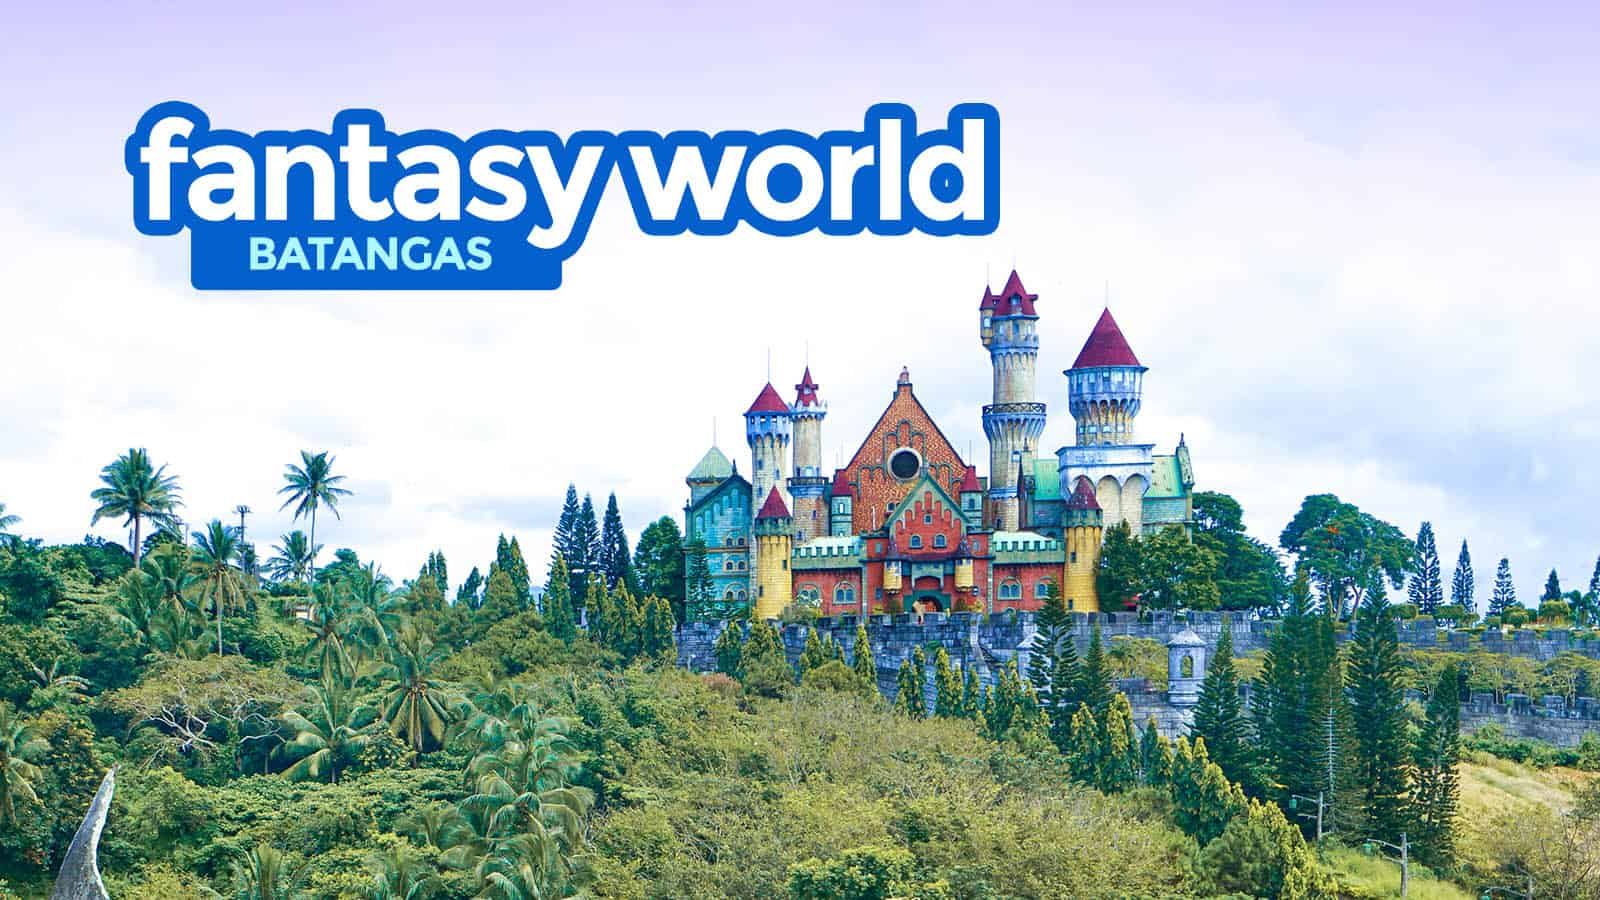 FANTASY WORLD TRAVEL GUIDE: Abandoned Theme Park in Batangas